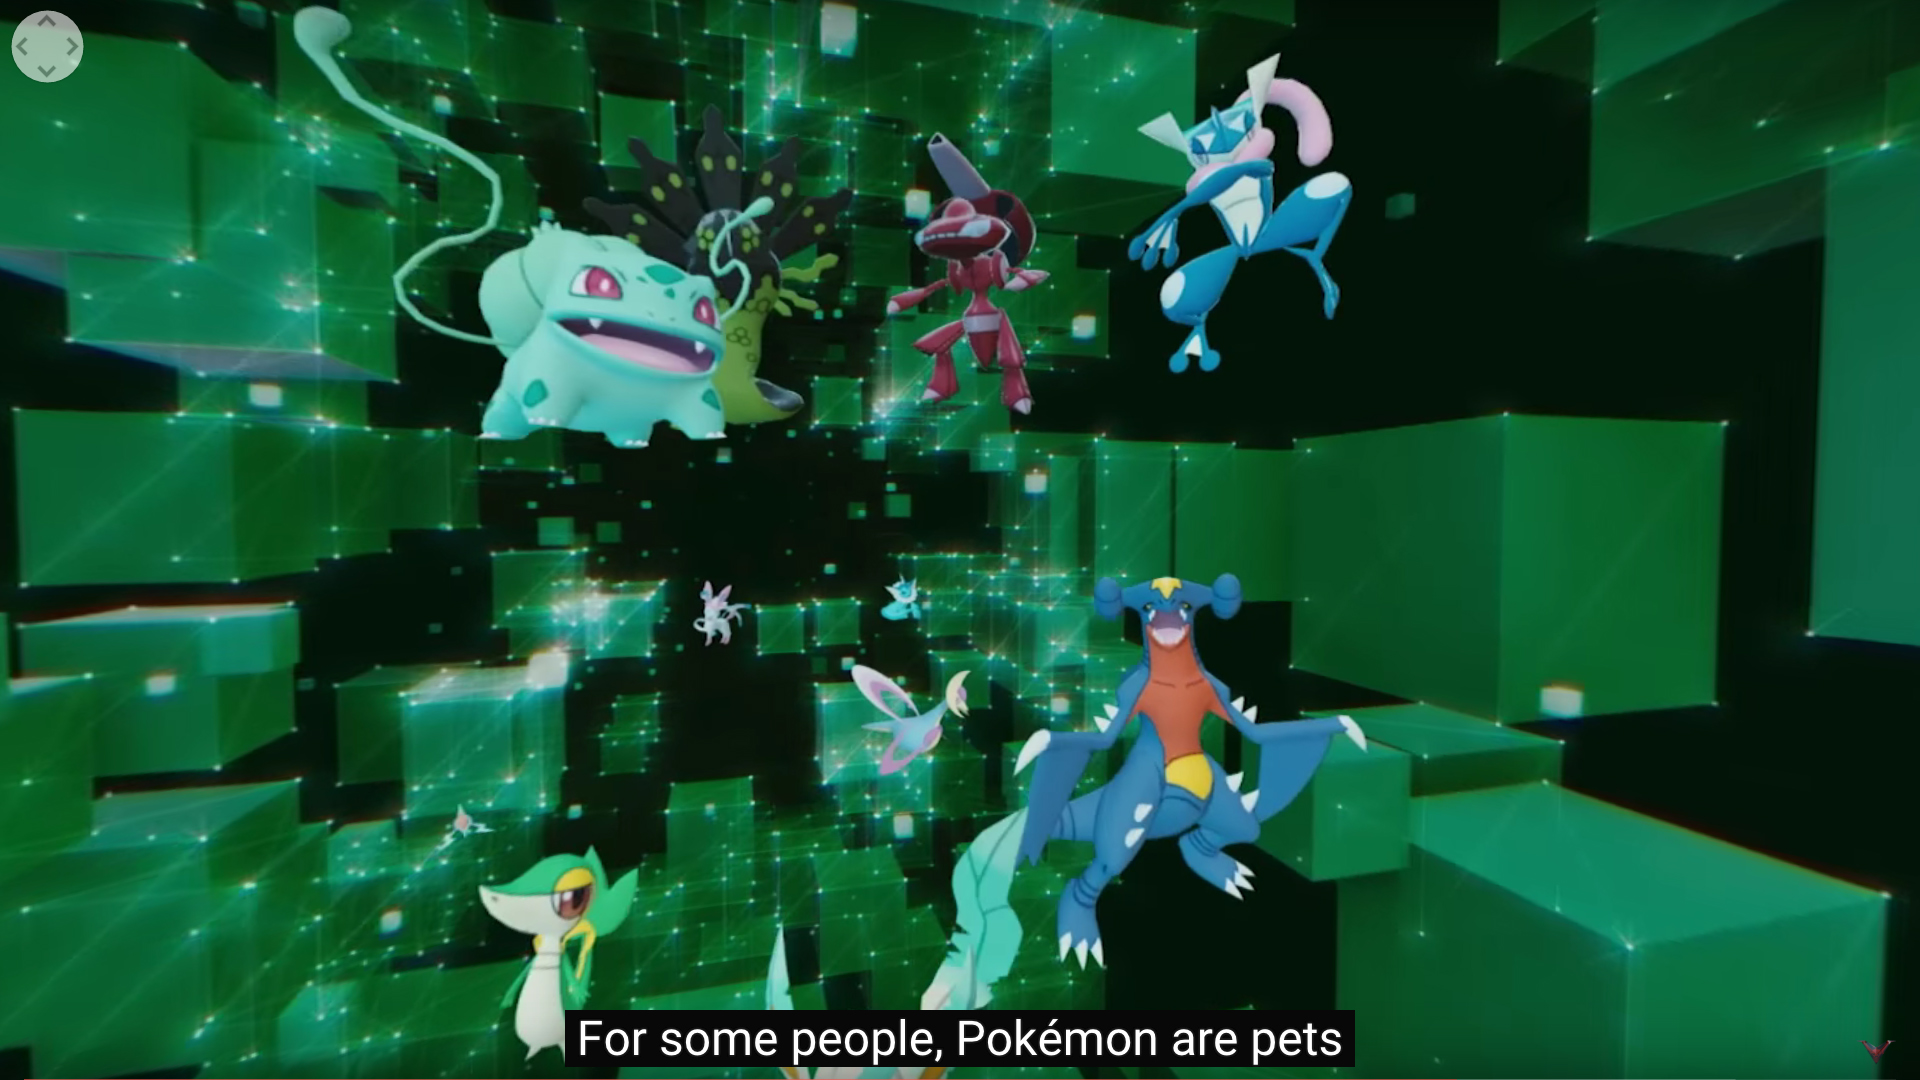 For some people Pokemon are pets